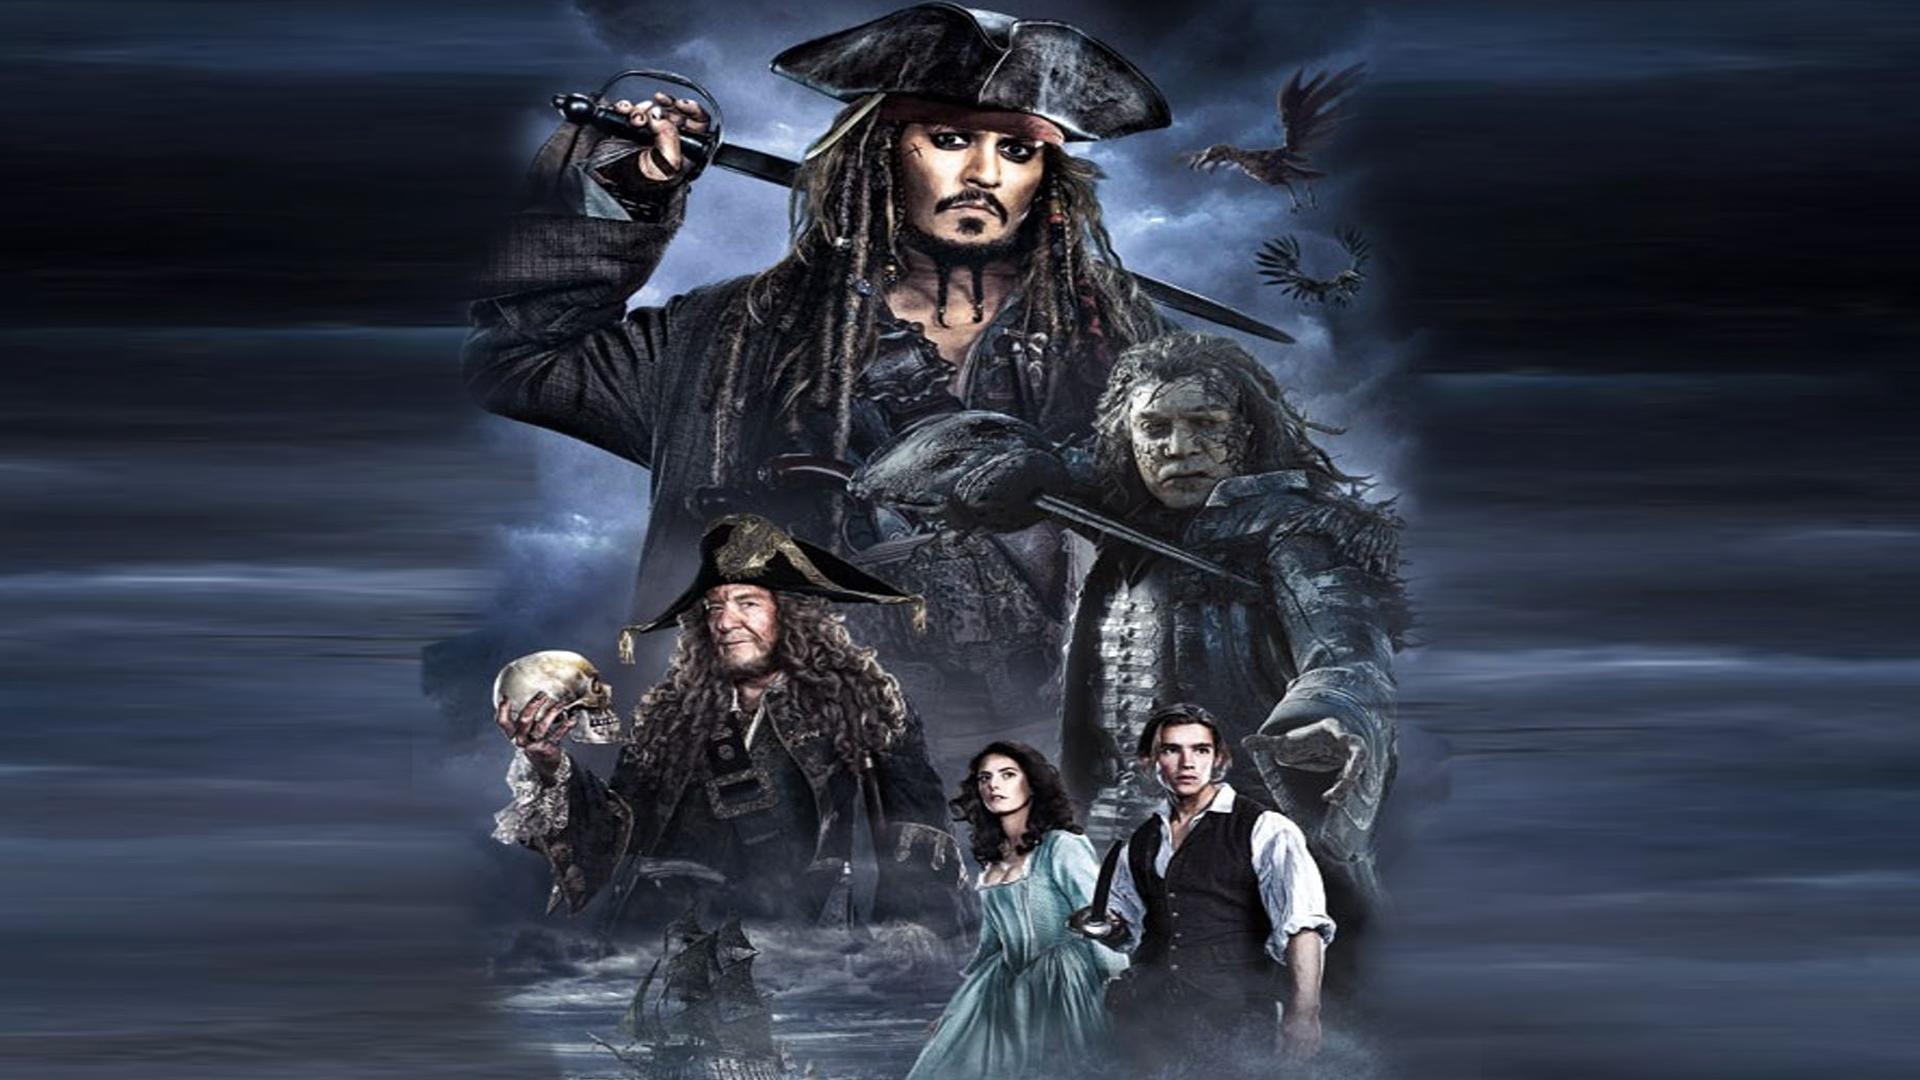 Pirates Of The Caribbean Dead Men Tell No Tales By The Dark Mamba